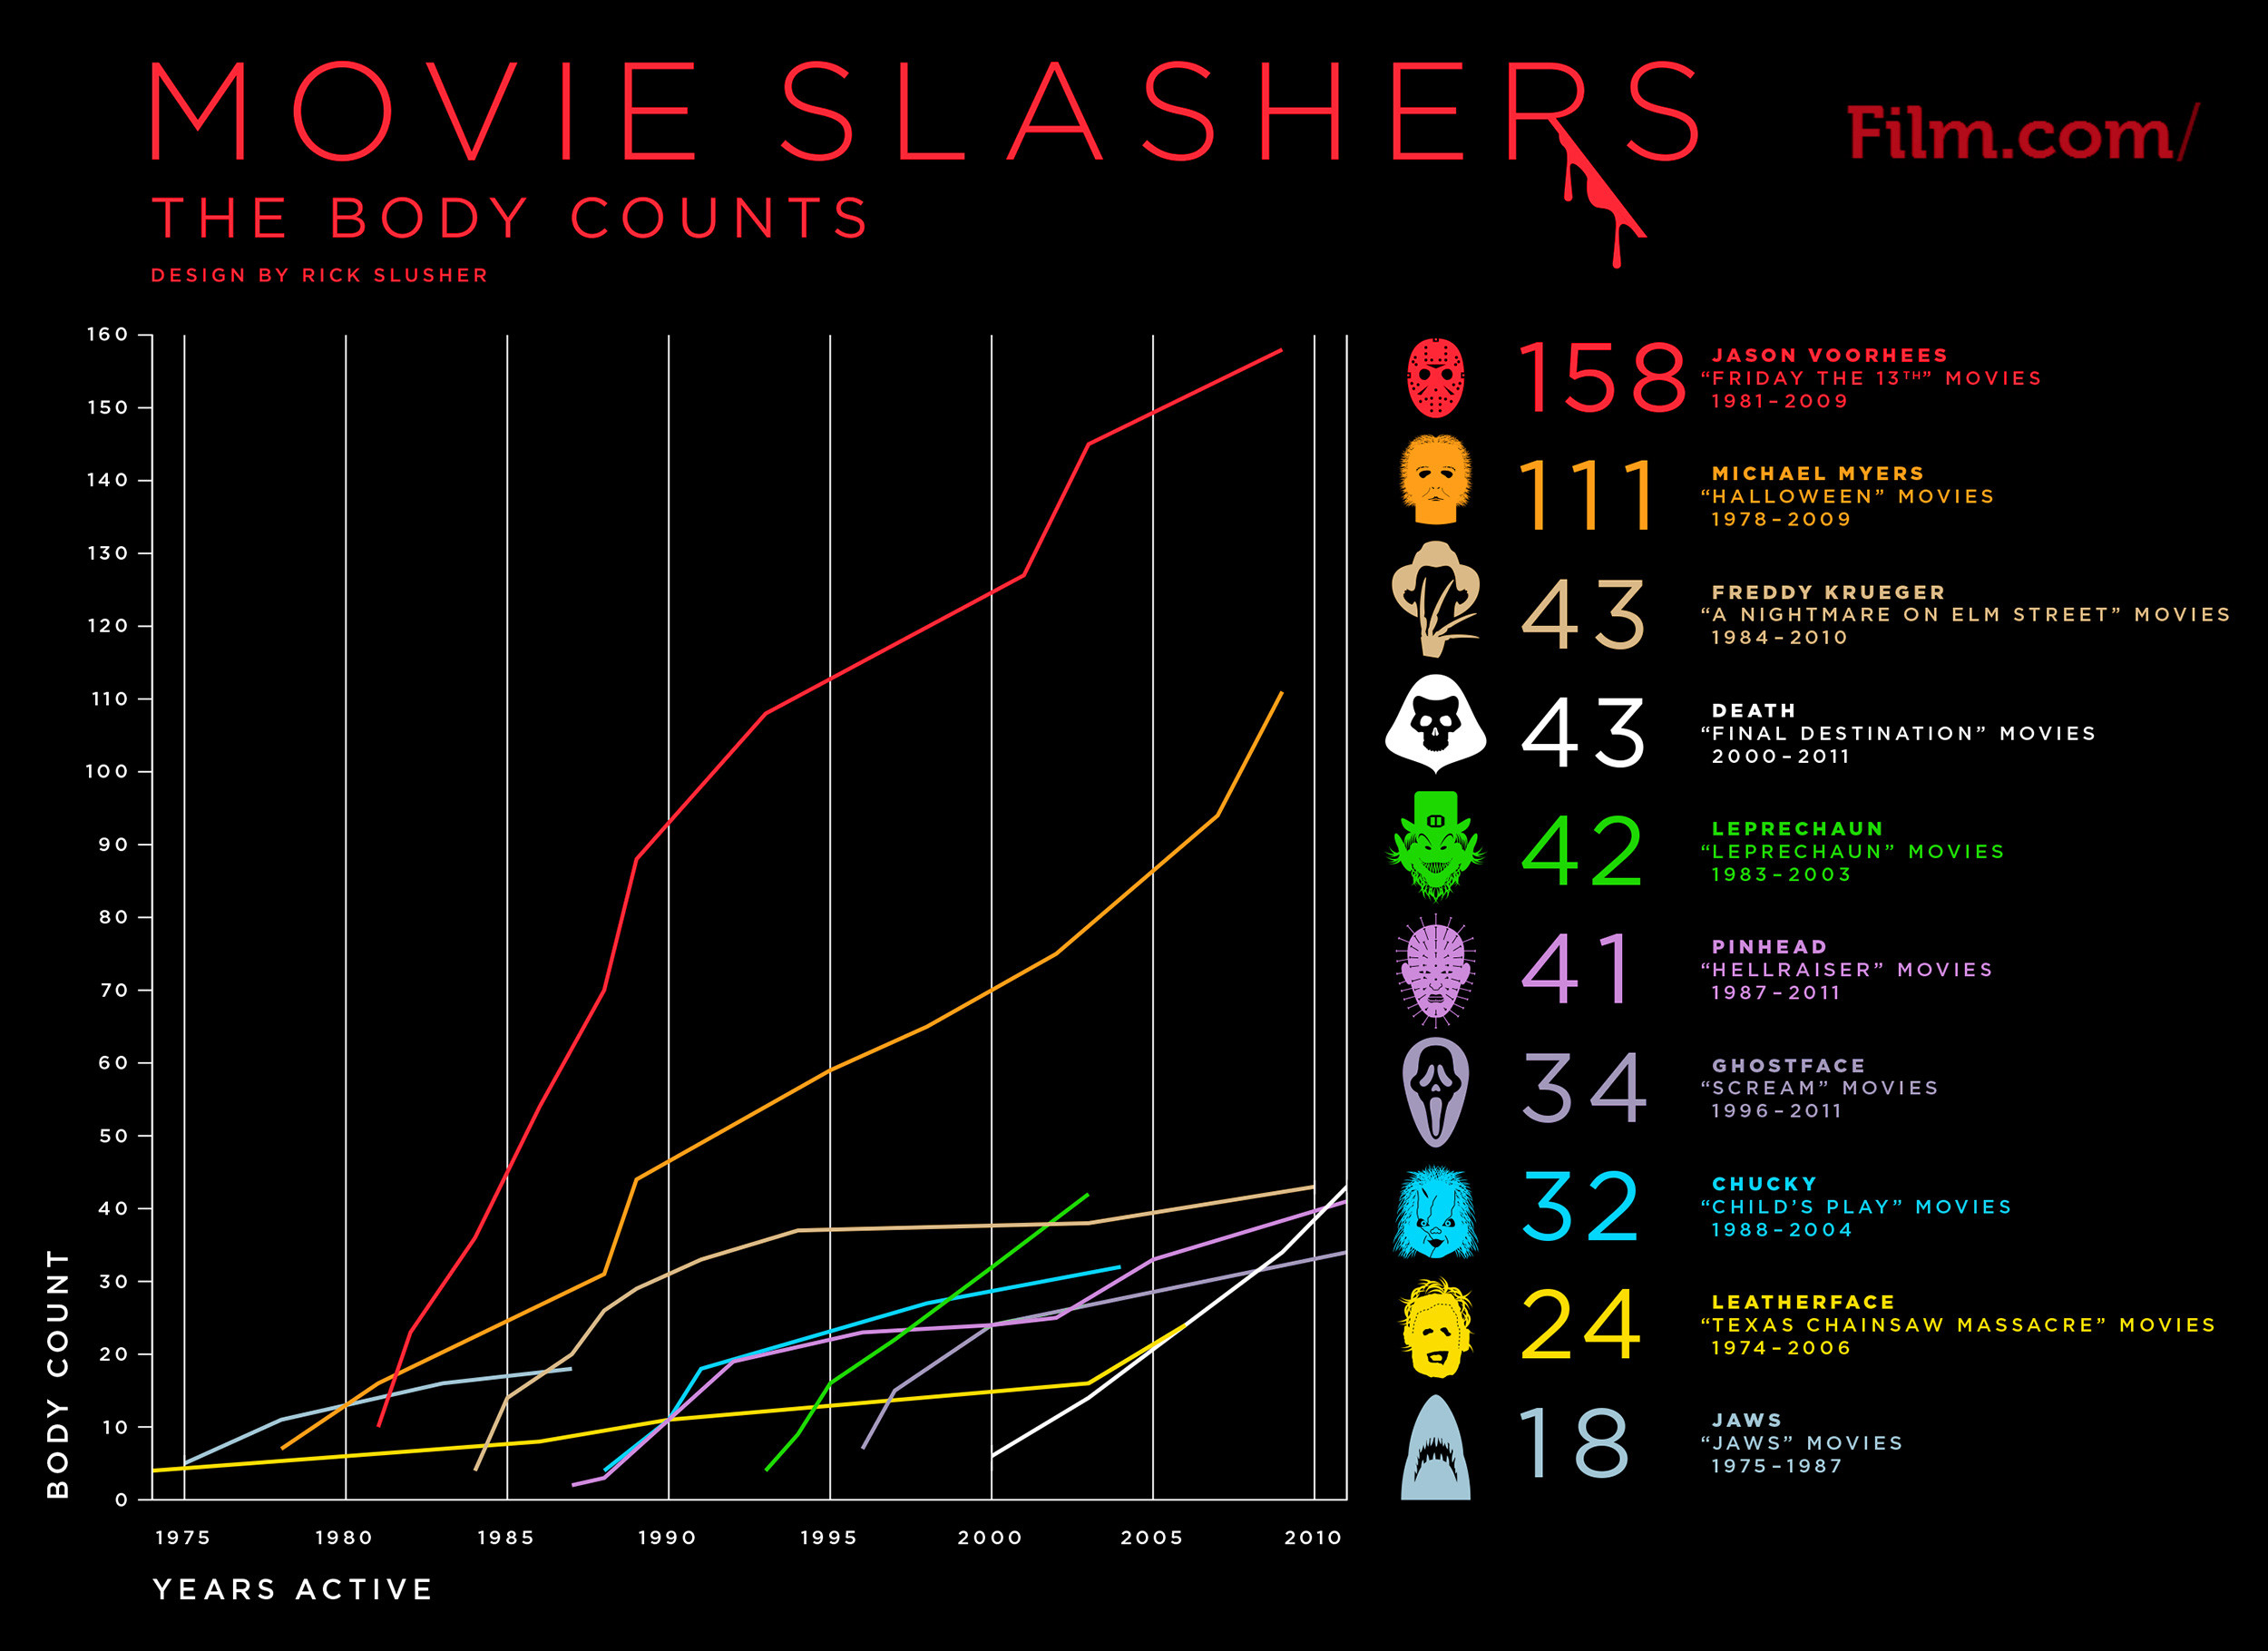 killer graph shows the kill count of several movie